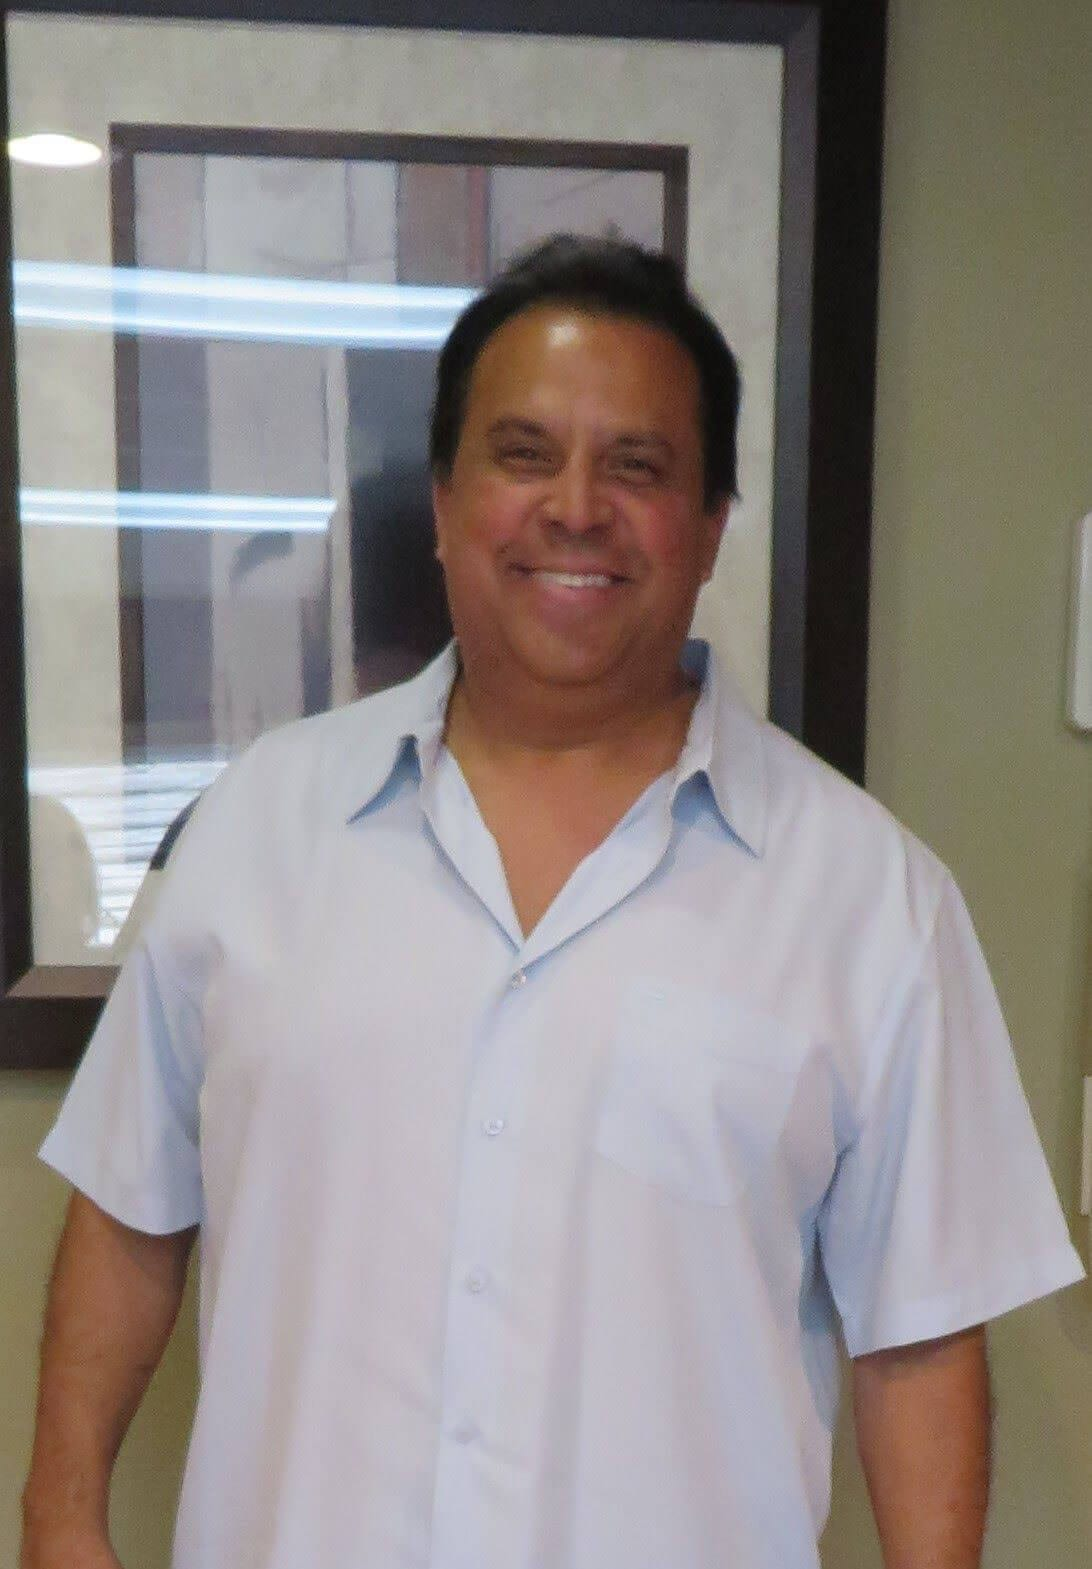 """<h1 class=""""hide_09"""">Bariatric Surgery <br>Before and After - Jamie P.</h1> 